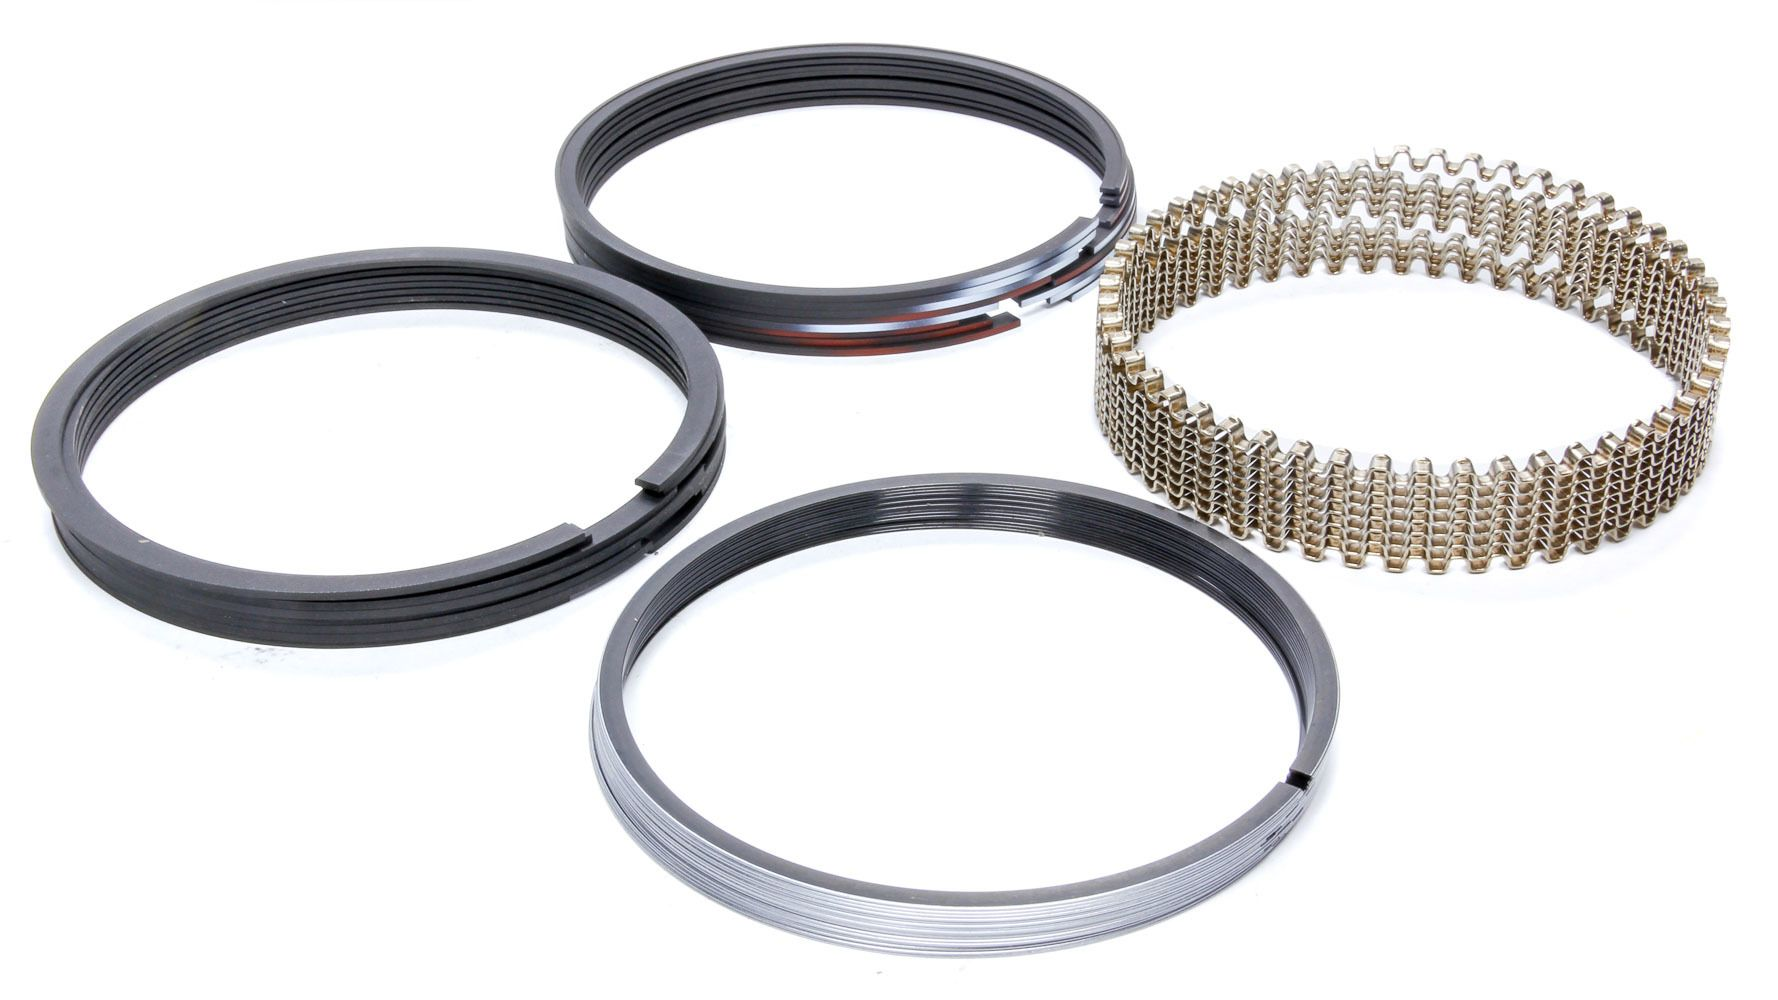 Piston Ring Set 4.505 HTD/HT 017 1/16 3/16 AKERLY-CHILDS 19527-5